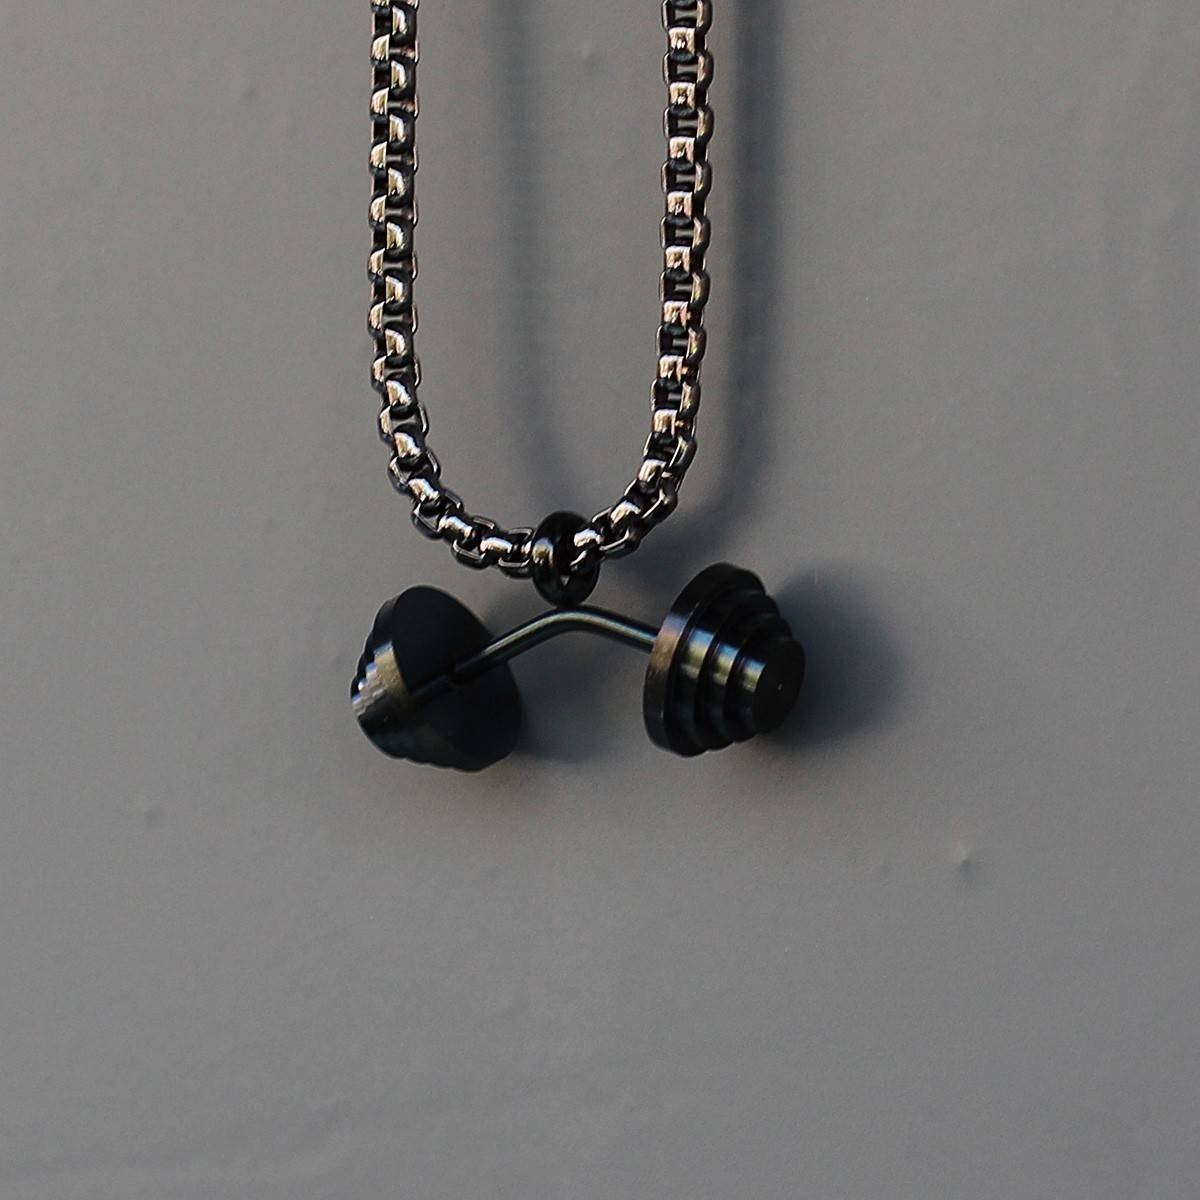 Men's Dumbbell Necklace Black